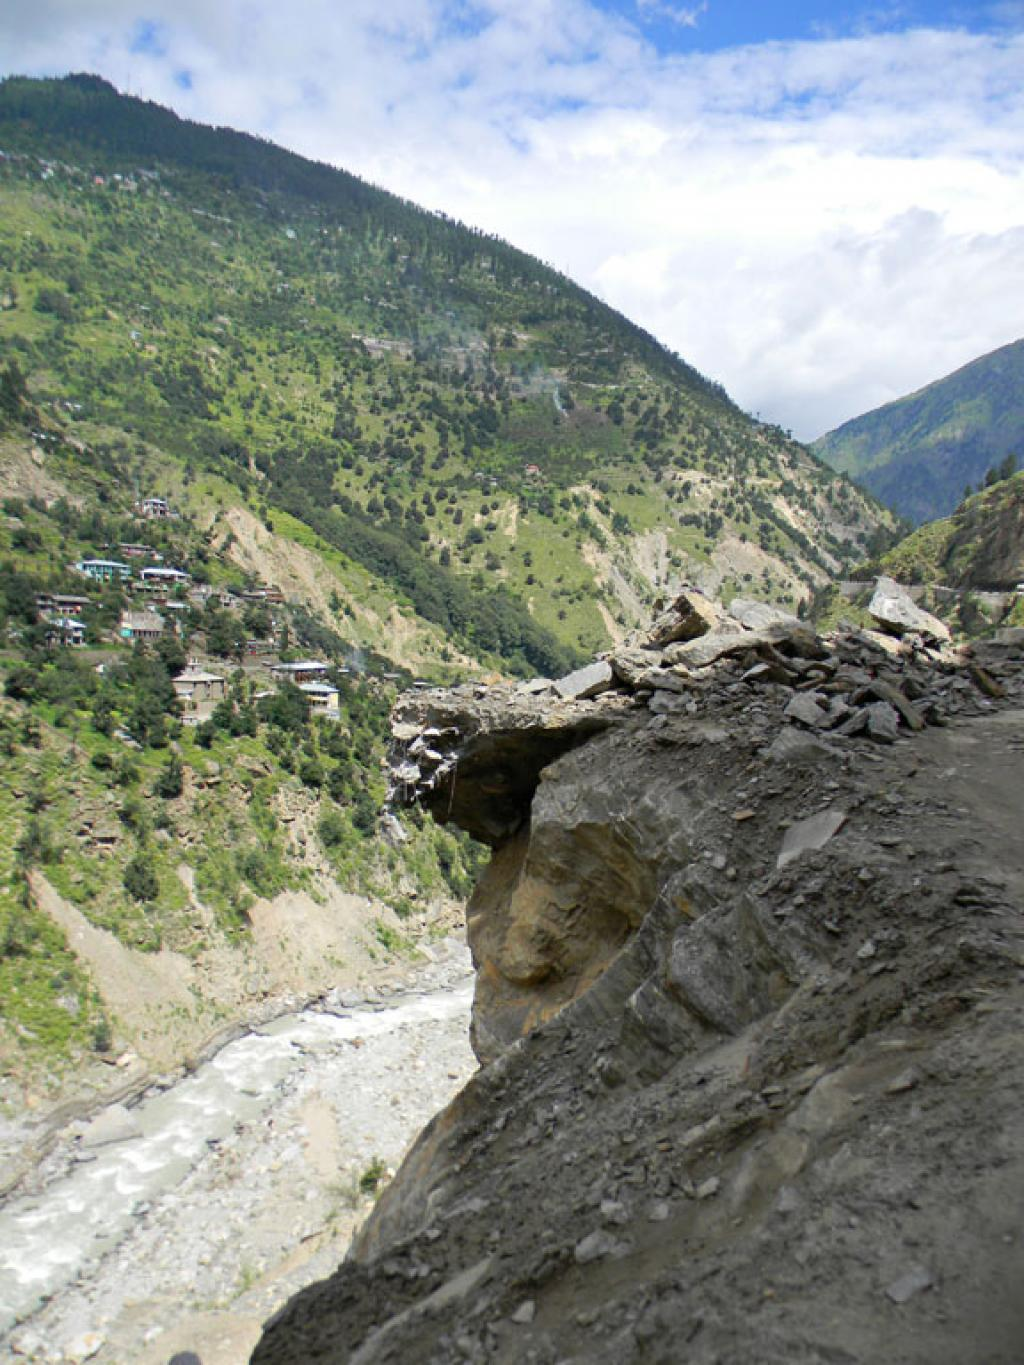 The road from Karcham to Sangla is now dotted with land slide & breakages.